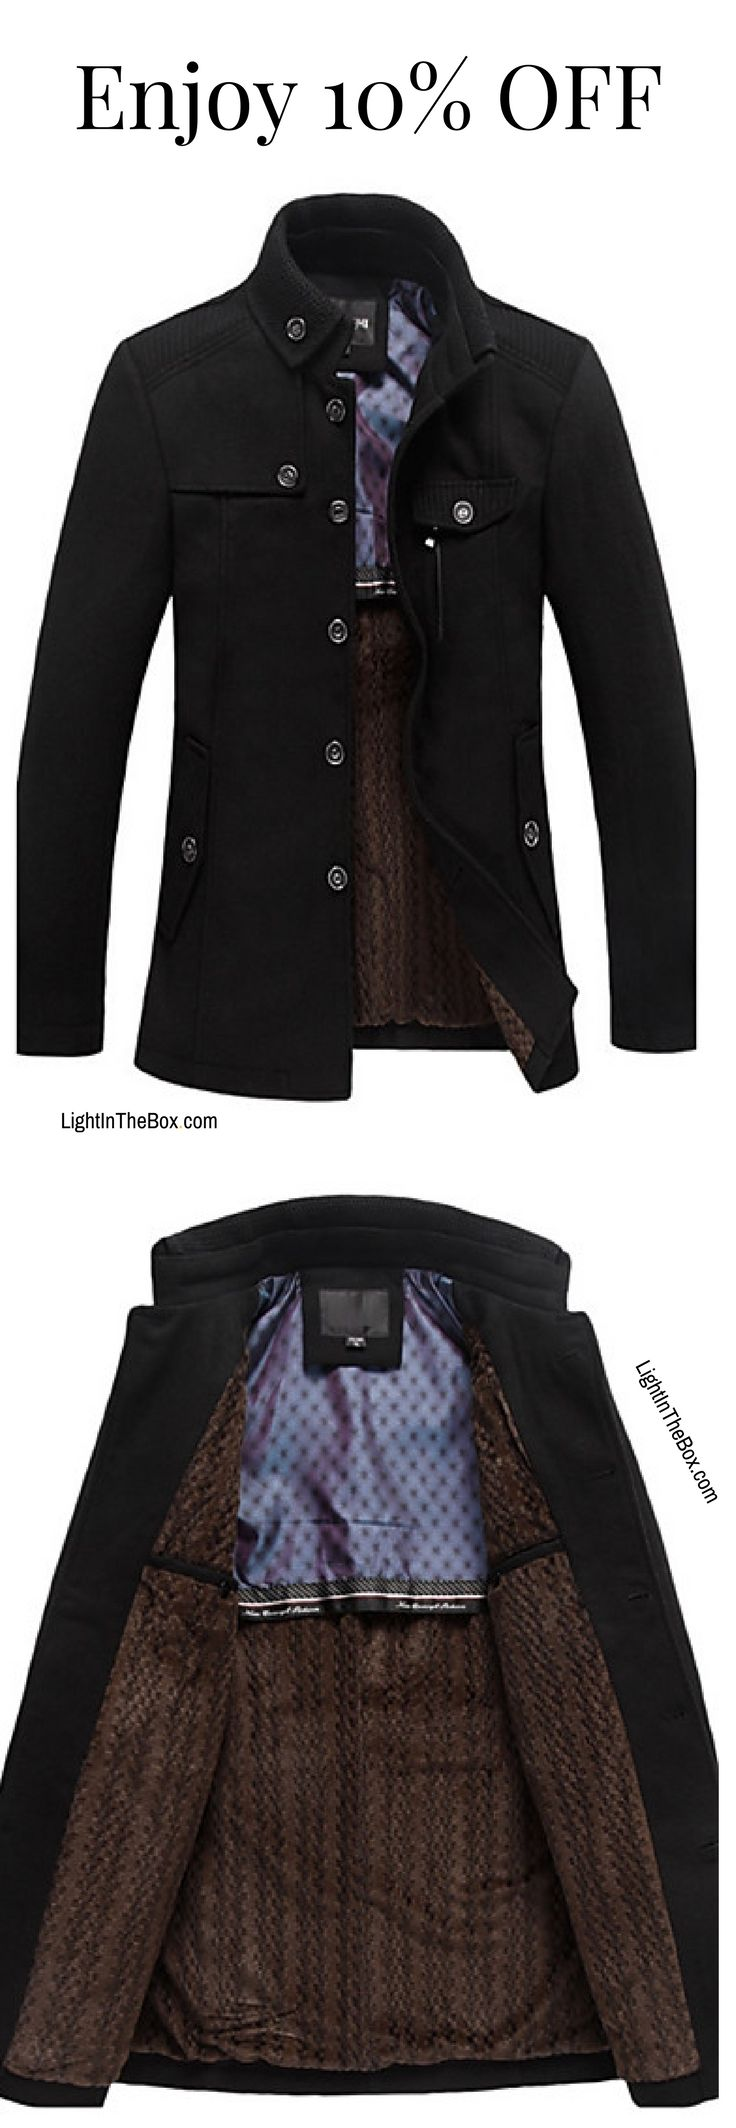 Chic men winter trench coat for professional men. Find it in black, beige and brown colours at just $60.29.